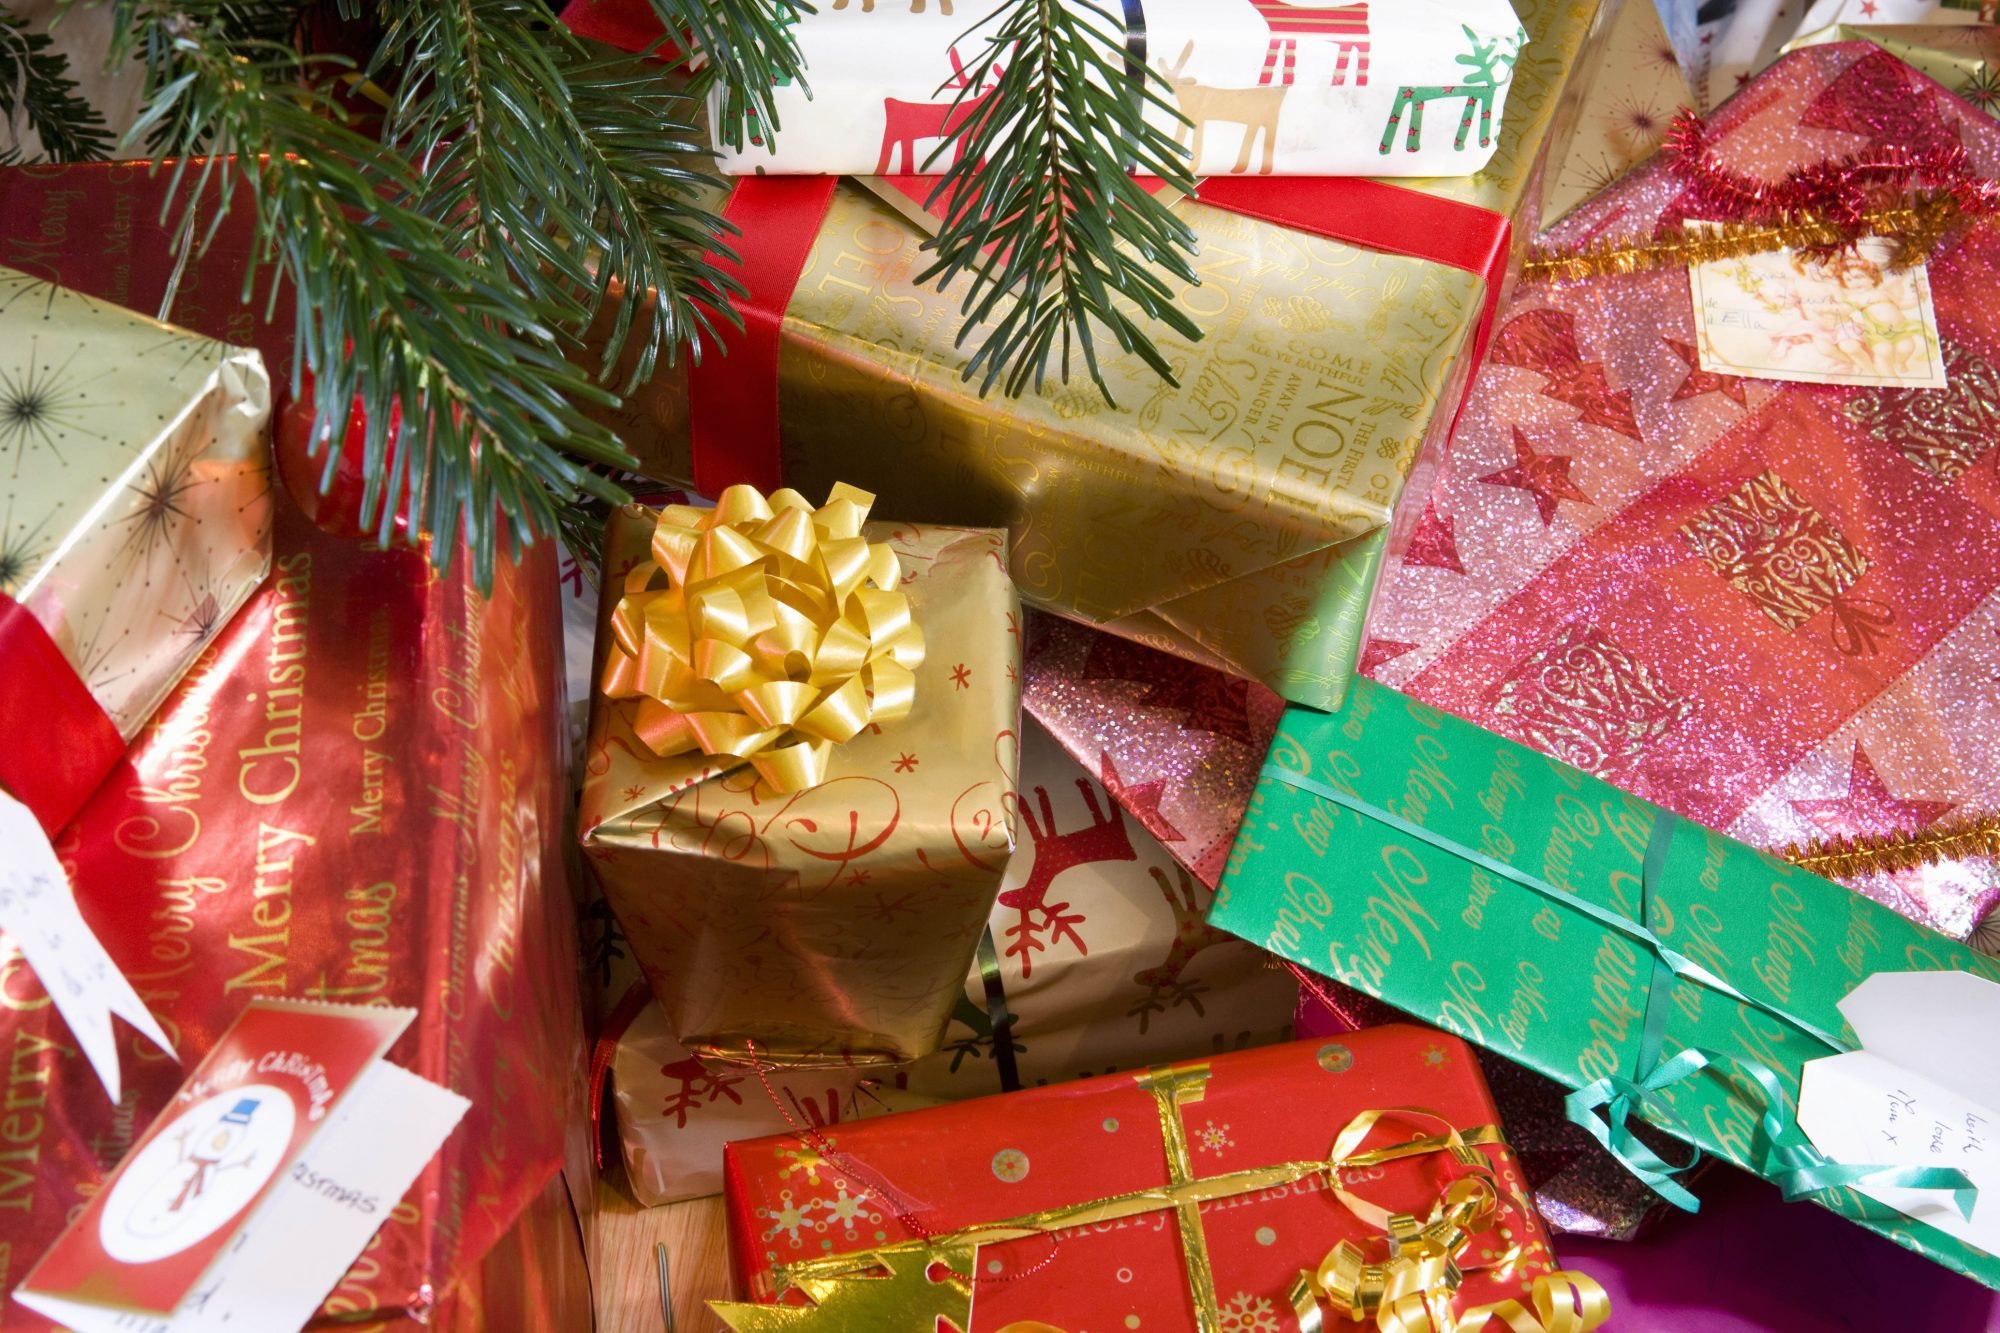 Christmas presents under decorated tree